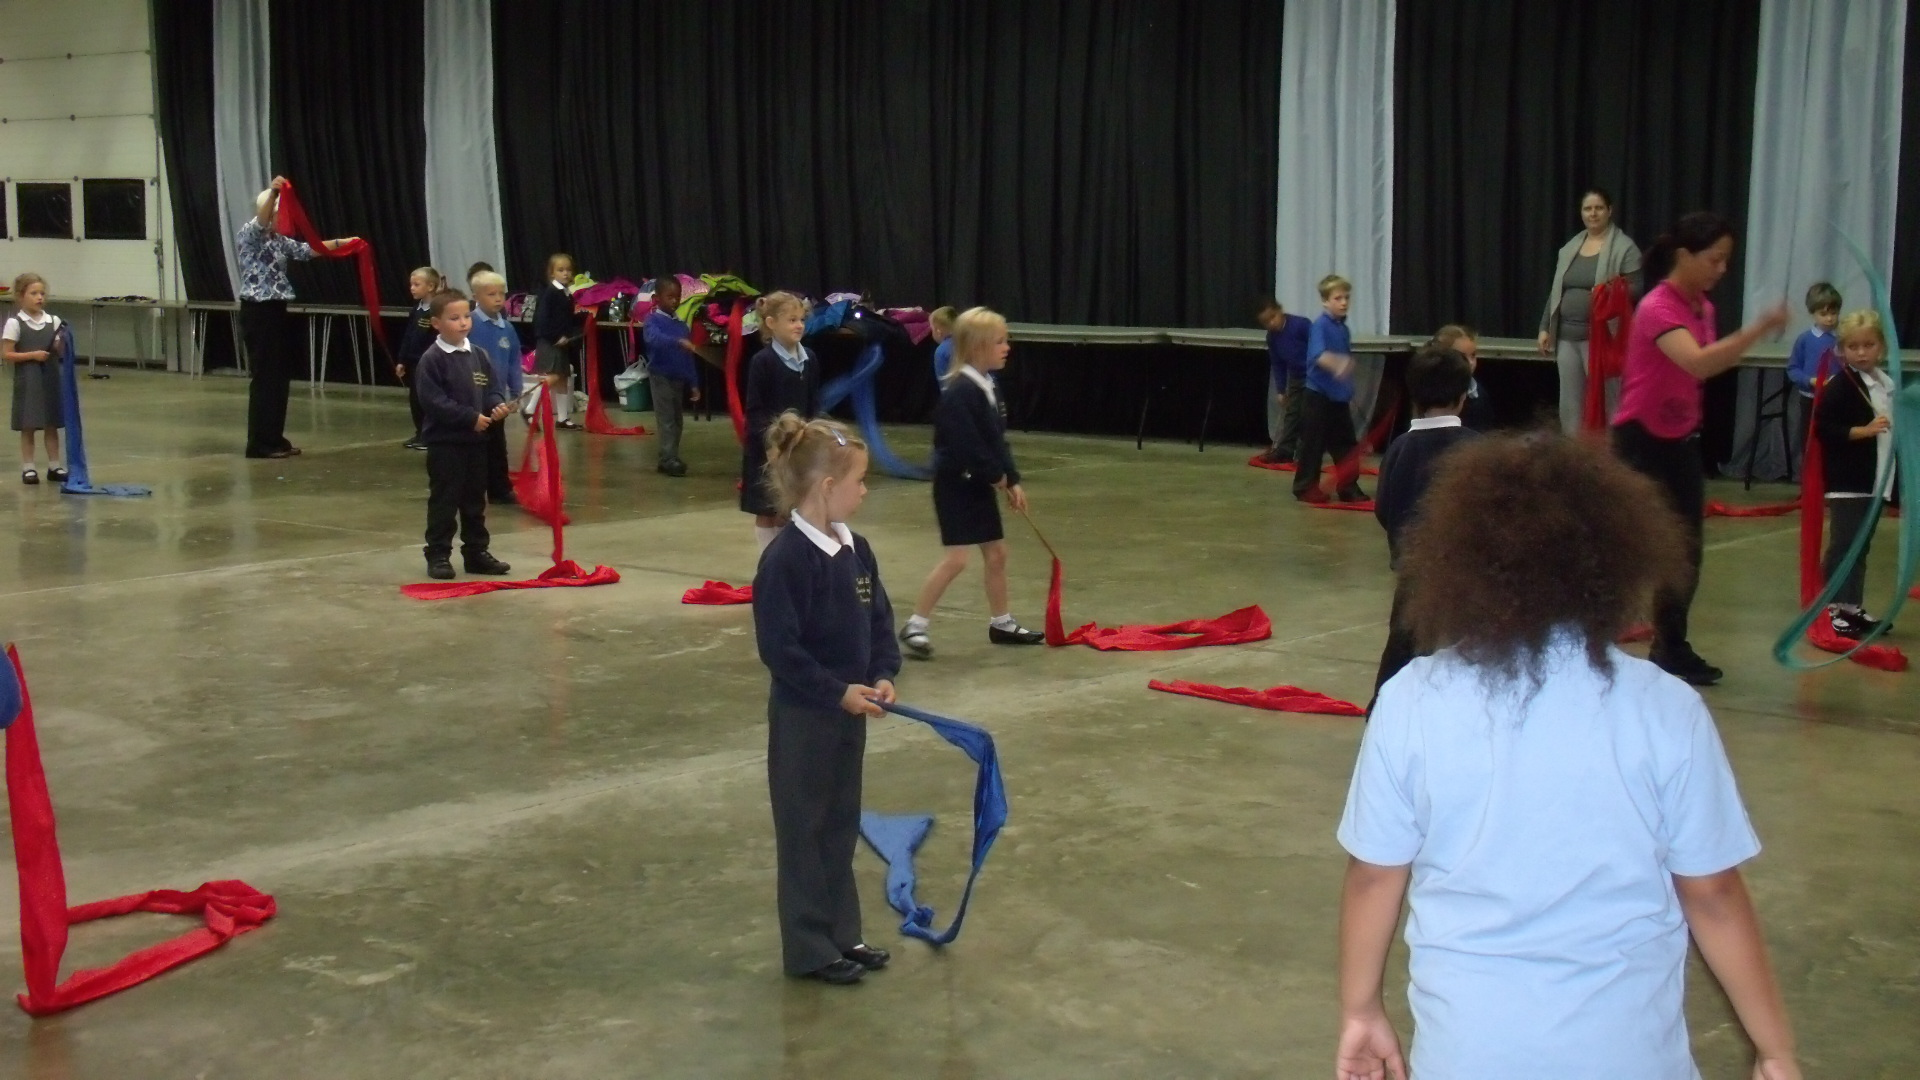 School children learning chinese dancing